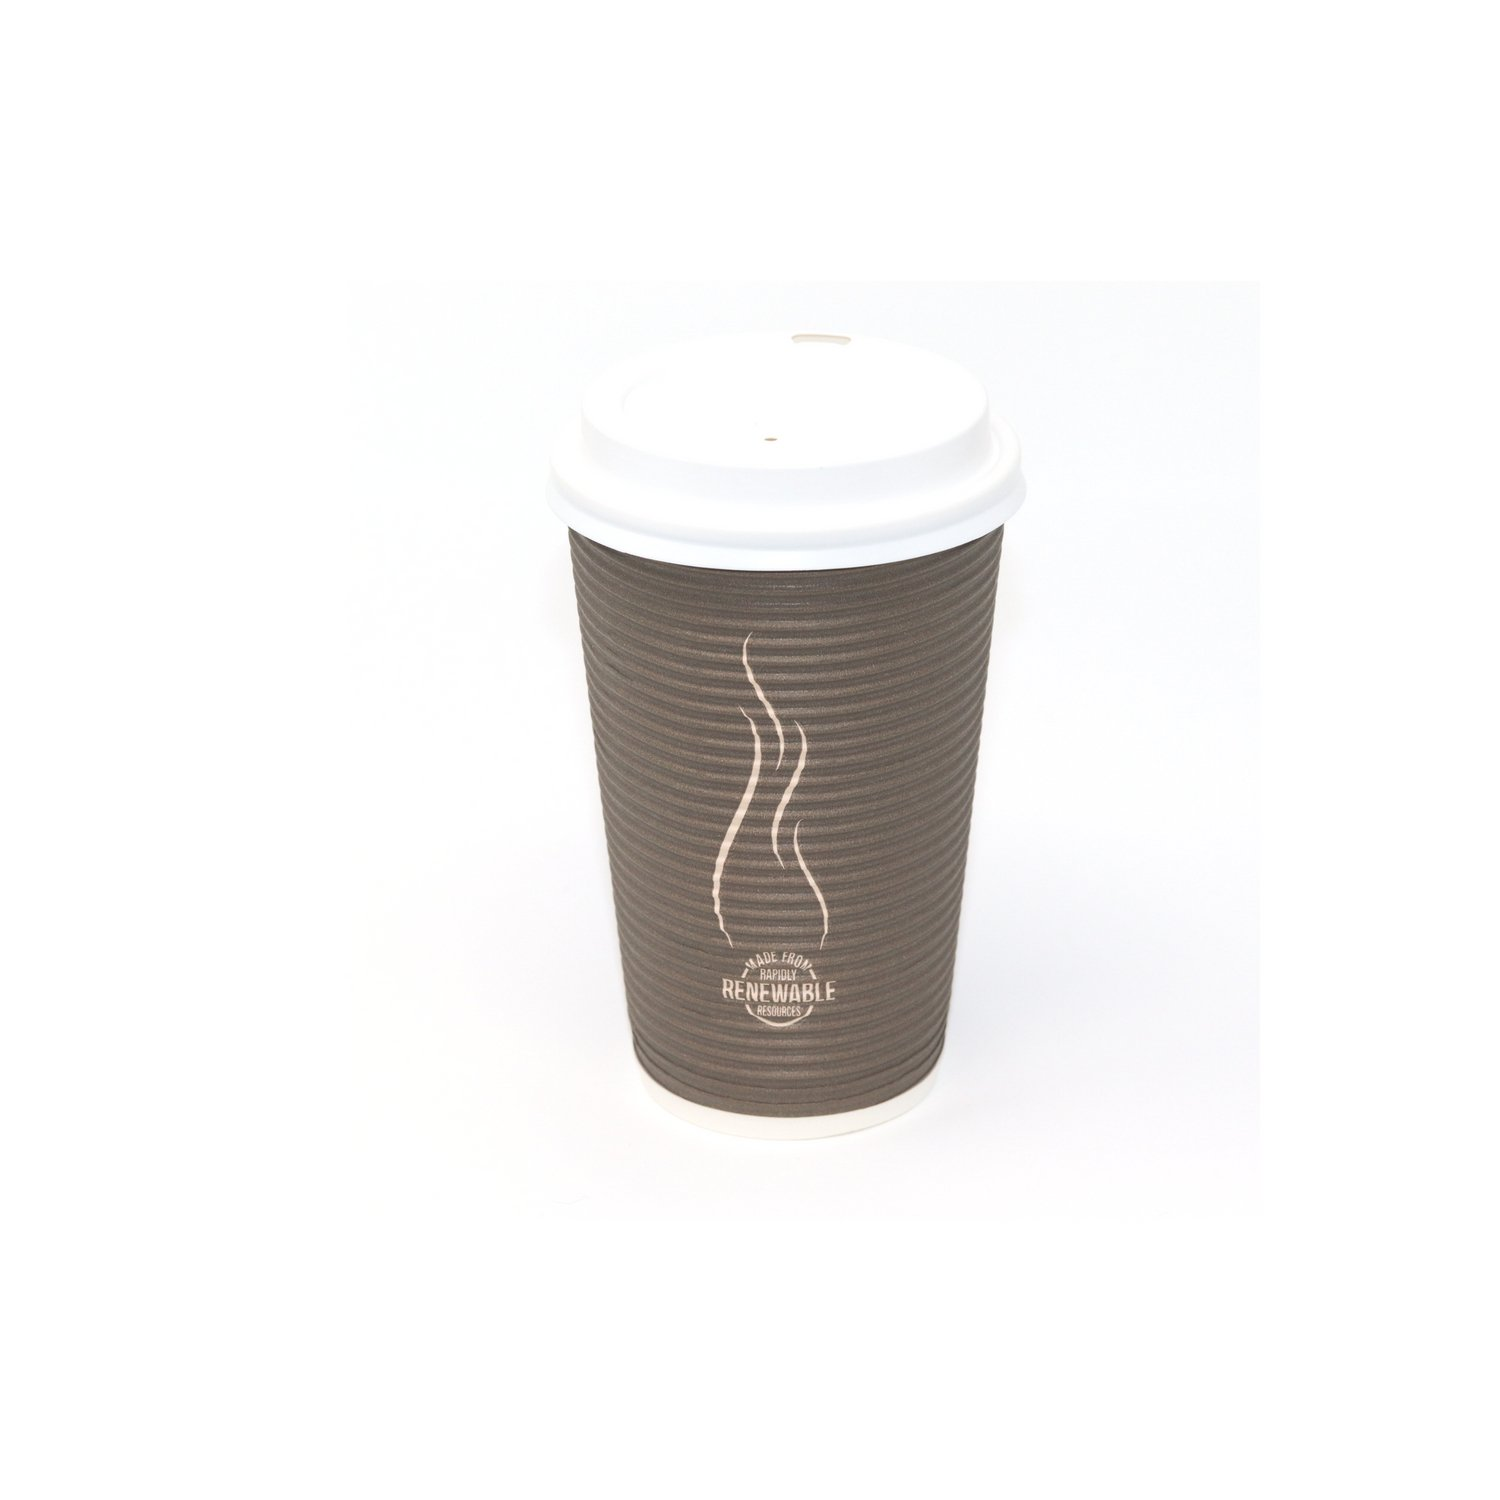 Disposable Insulated To Go Ripple Biodegradable Hot Coffee Cups with Lids [16 oz with Lid] by Berkley Square (Image #1)